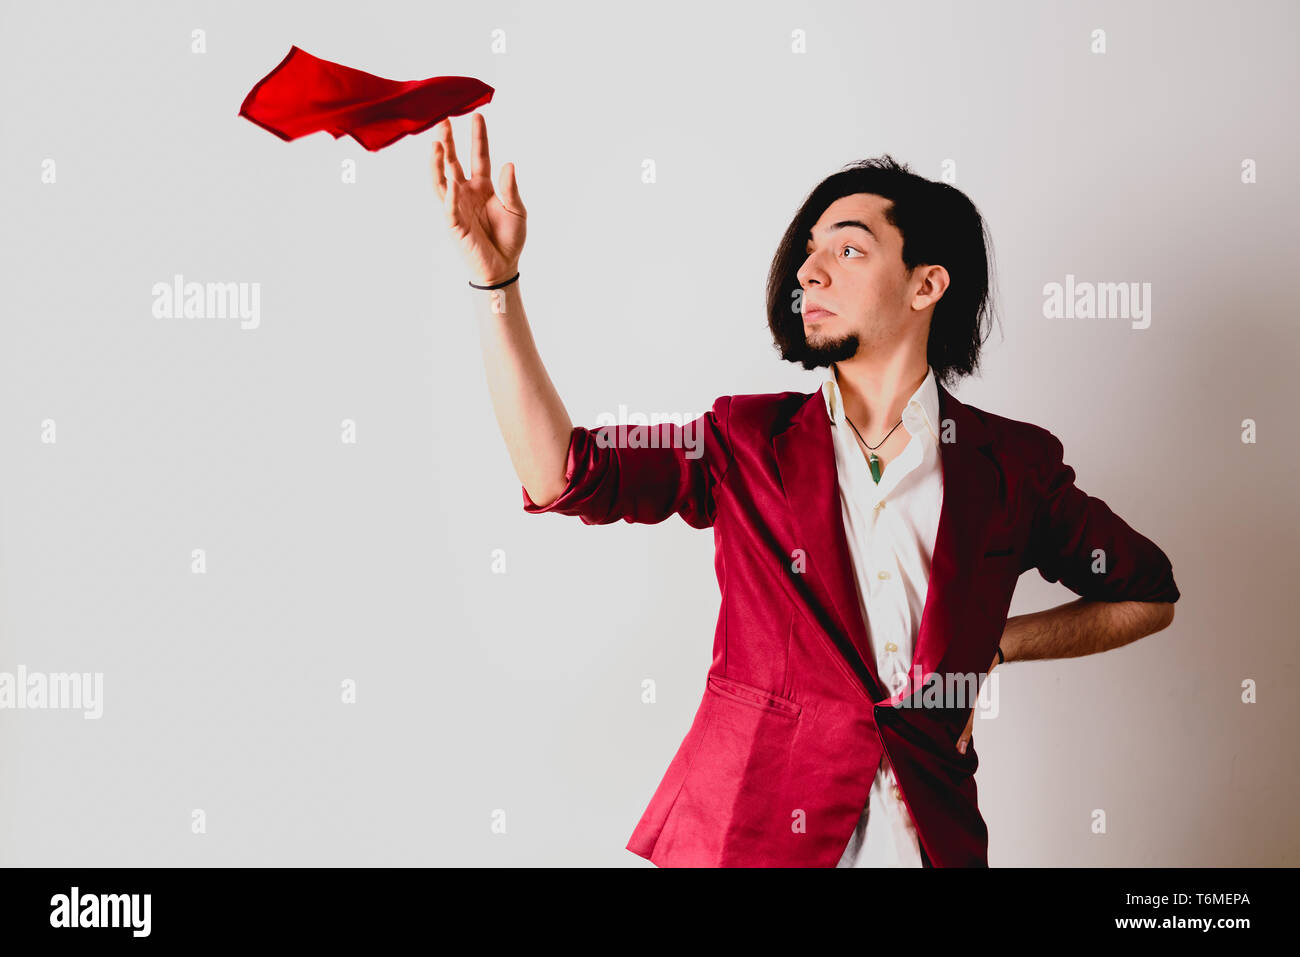 Portrait of young magician handling ropes and bandanas to do magic tricks, isolated on white. - Stock Image